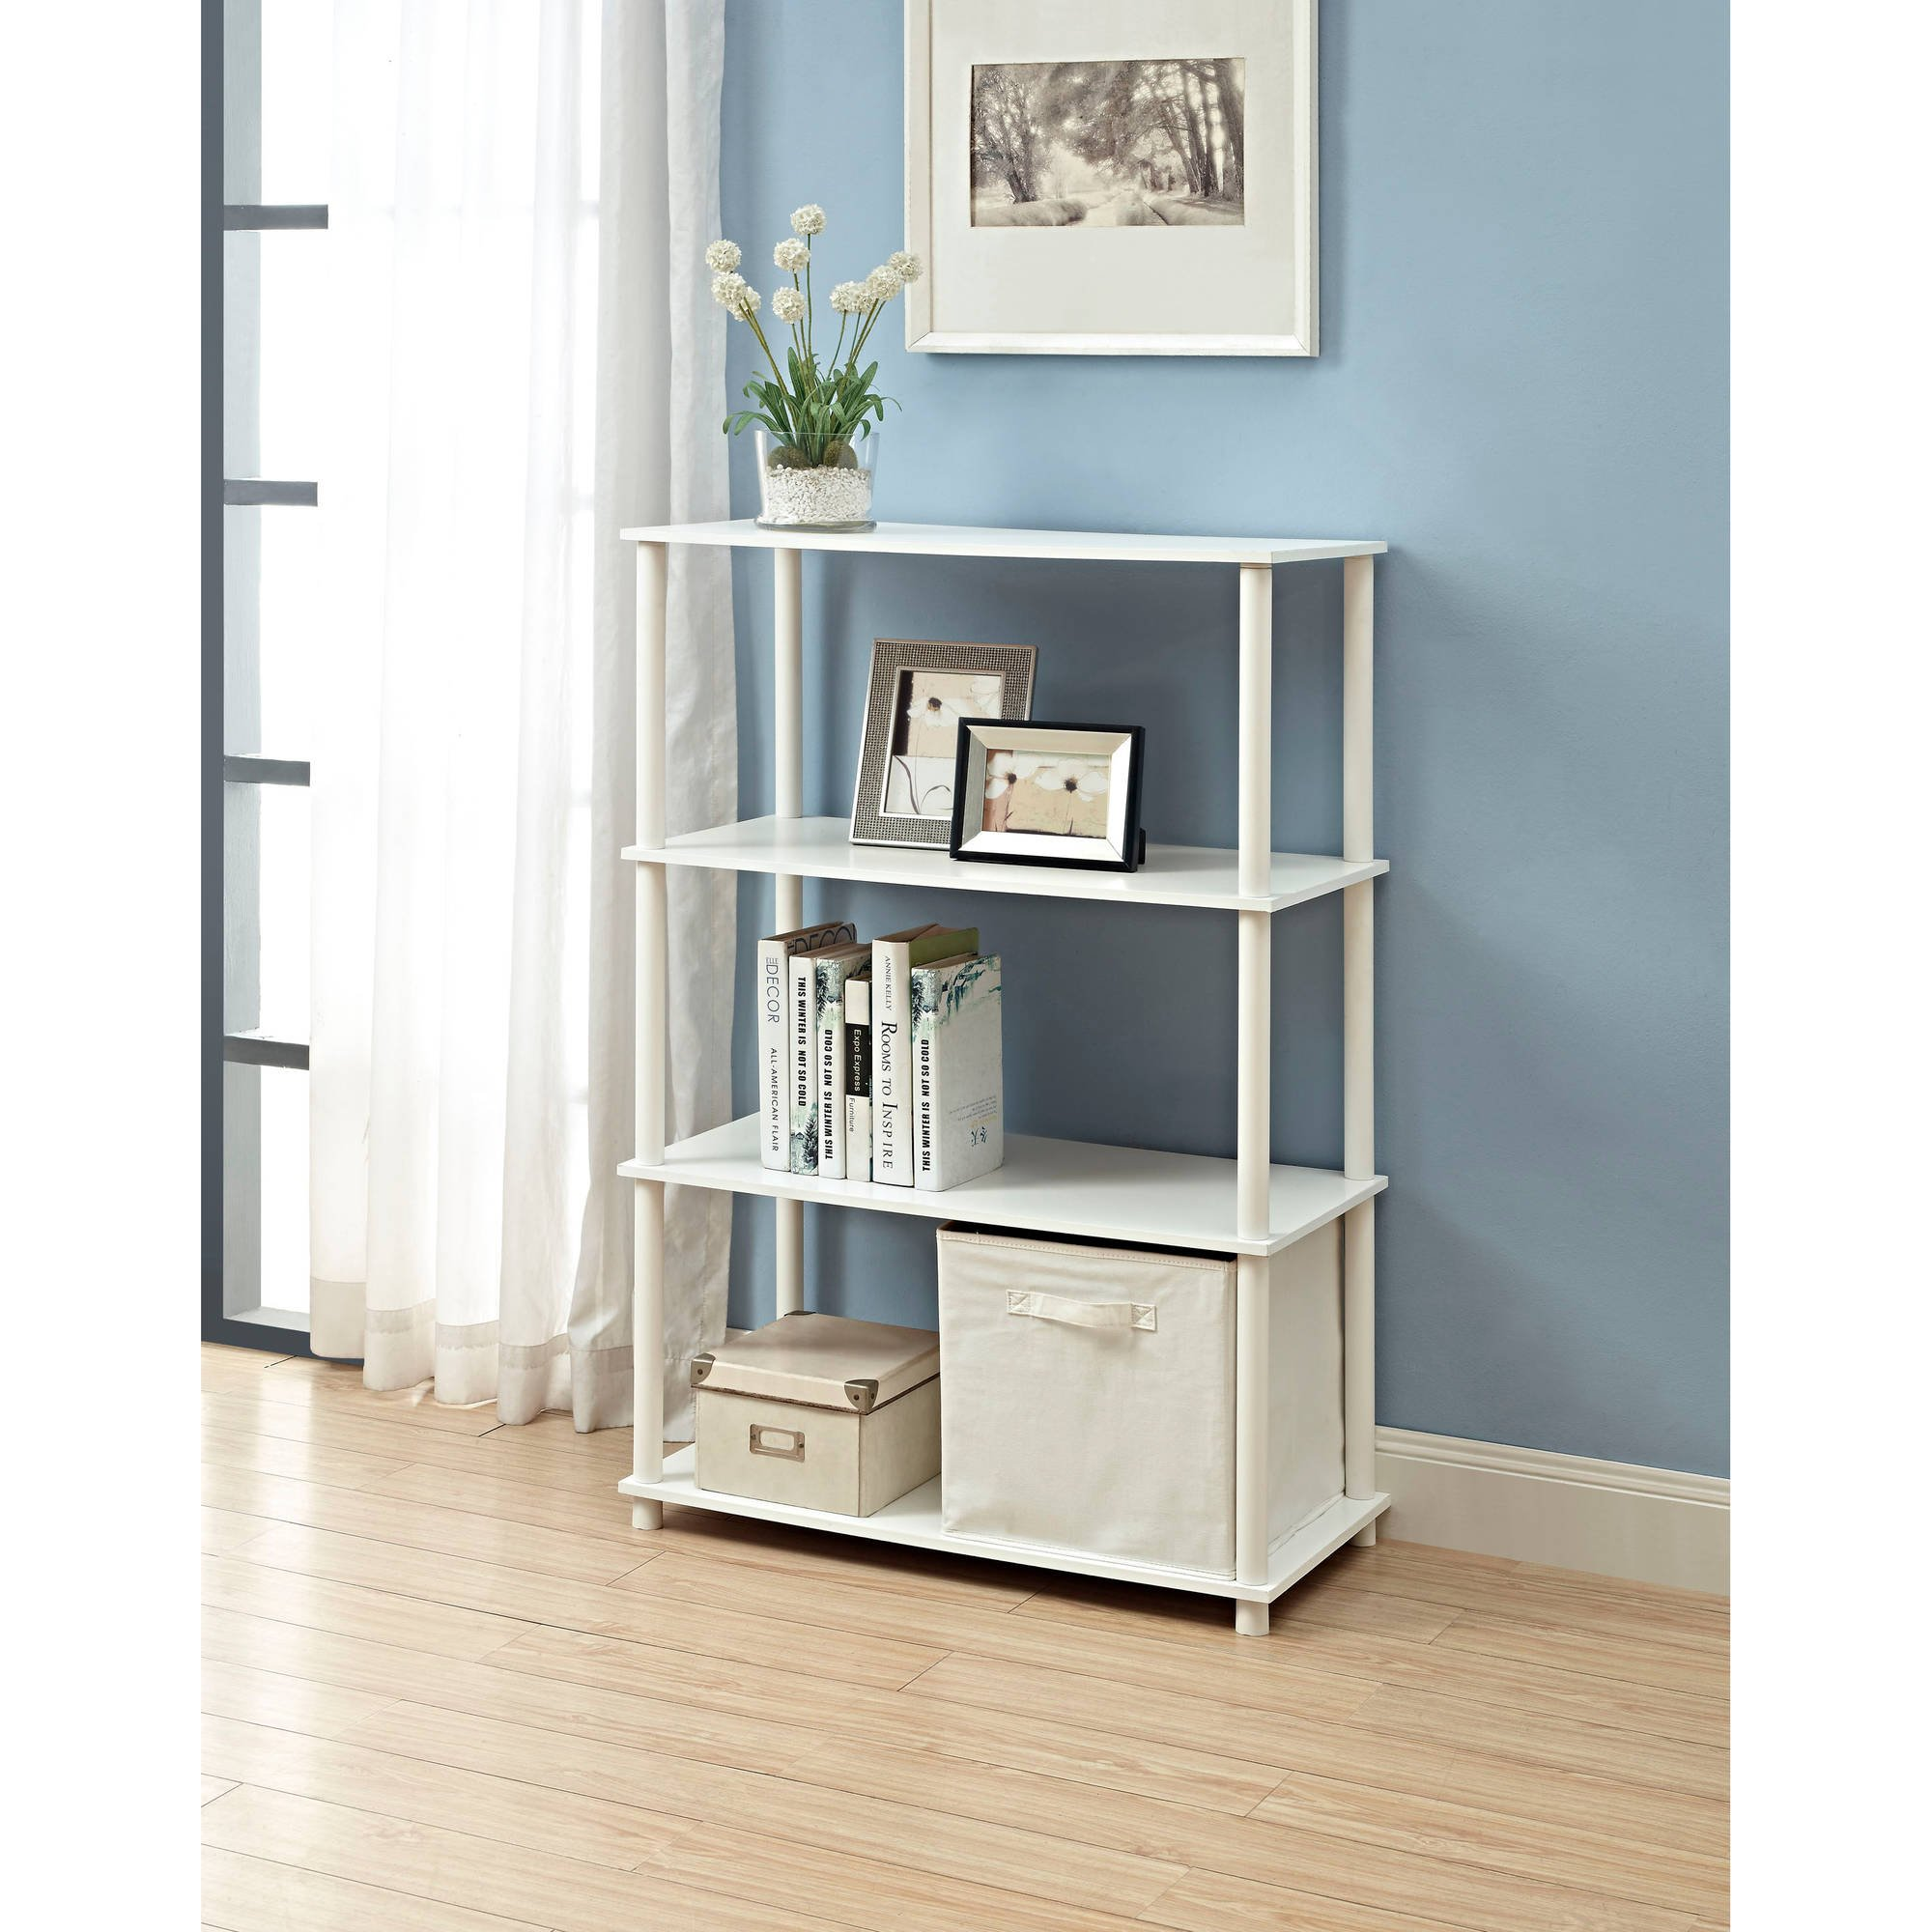 6-Cube Sturdy Storage Shelf, Strong Wood Composite Materials, No Tools Required for Assembly, Great for Home or Office, Can Be Stacked, Room Saving, Modern Design + Expert Guide (White)